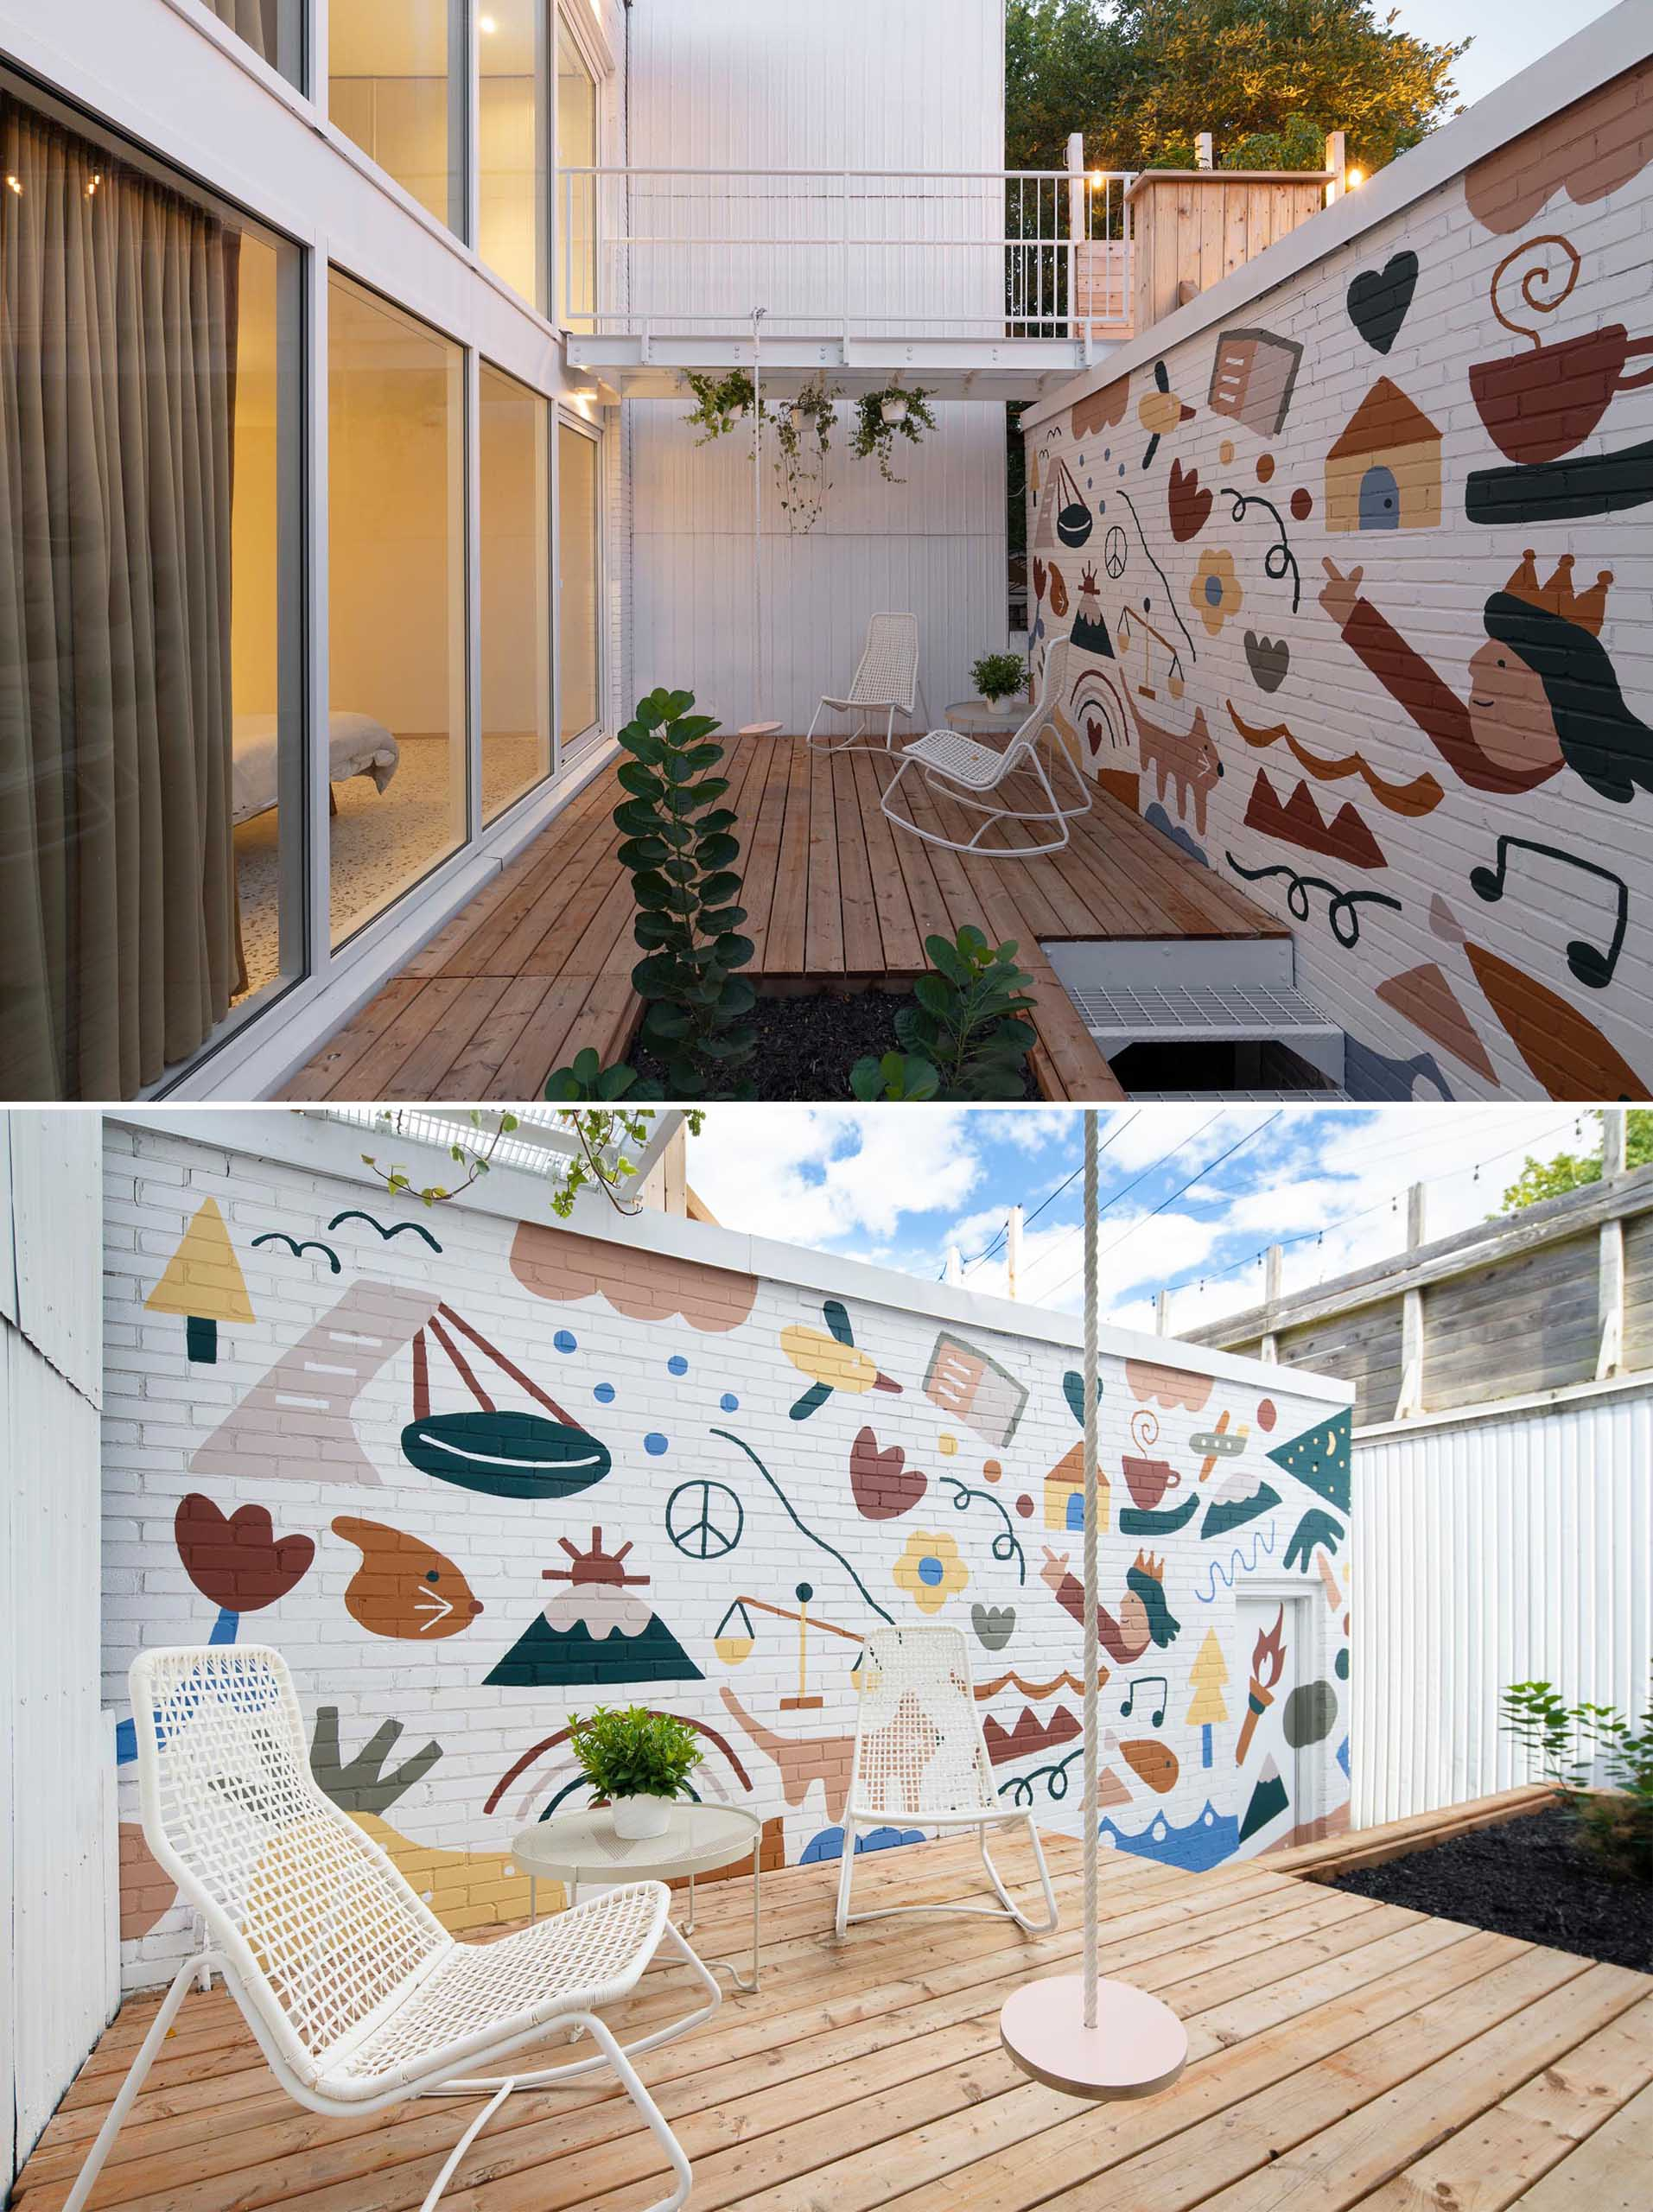 A modern and private courtyard with a fun and colorful mural by artist Marc-Olivier Lamothe.